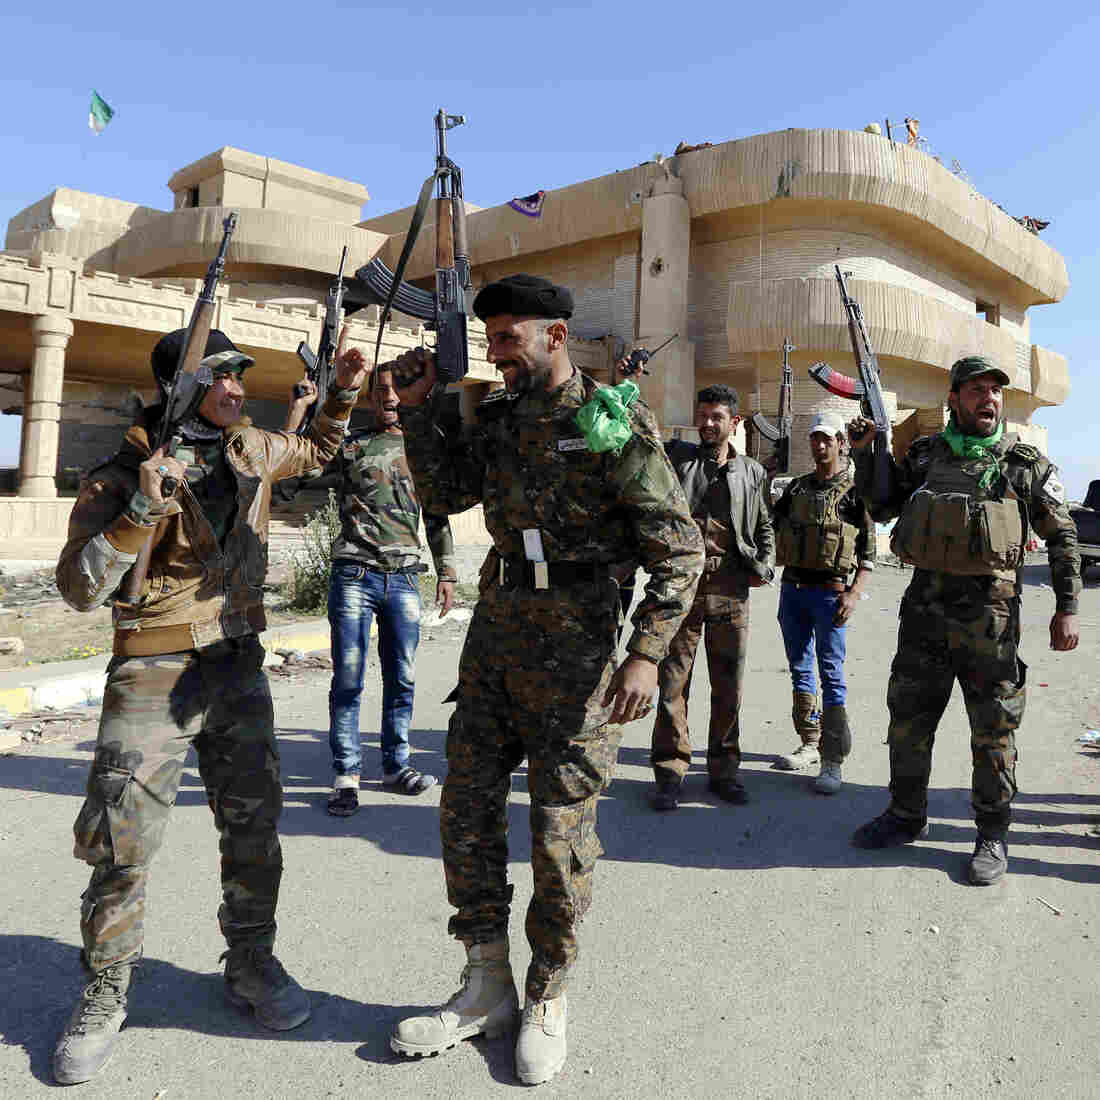 In Tikrit Offensive, Local Sunnis, Shiite Militias Are Unlikely Allies